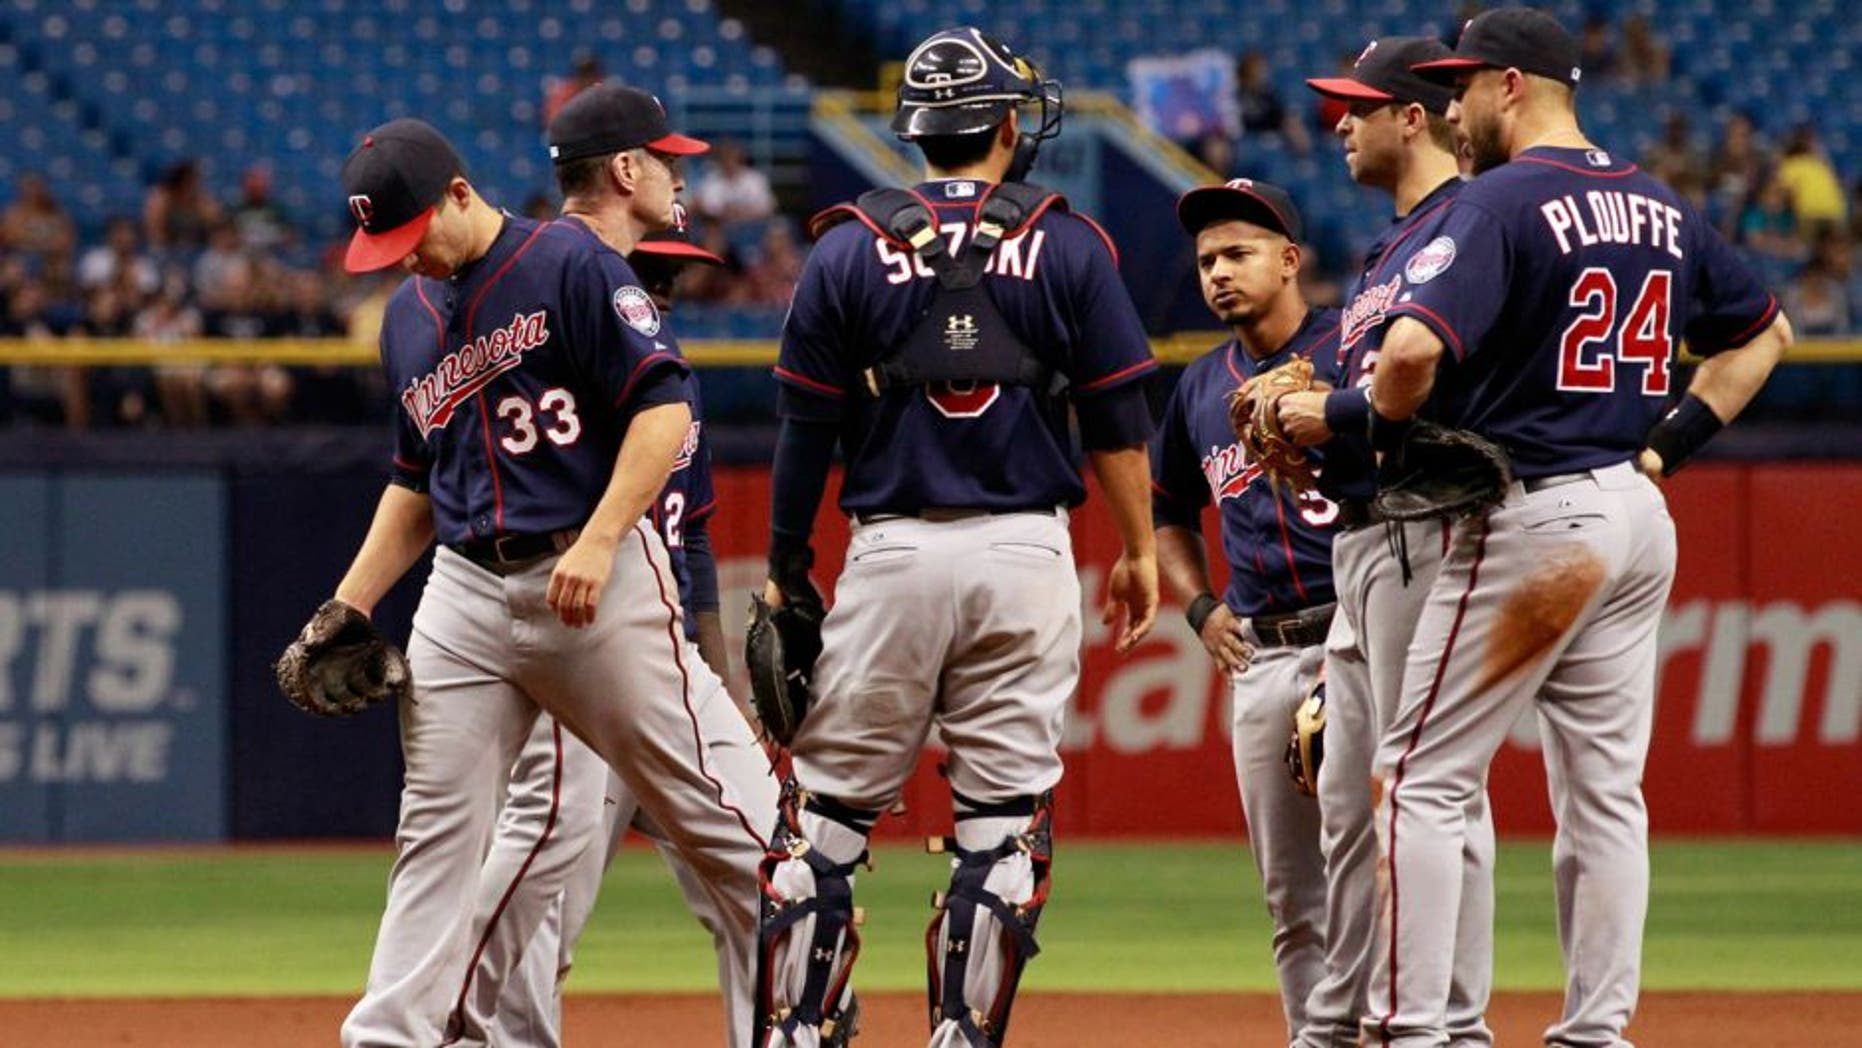 Aug 27, 2015; St. Petersburg, FL, USA; Minnesota Twins starting pitcher Tommy Milone (33) is taken out of the game during the sixth inning against the Tampa Bay Rays at Tropicana Field. Mandatory Credit: Kim Klement-USA TODAY Sports